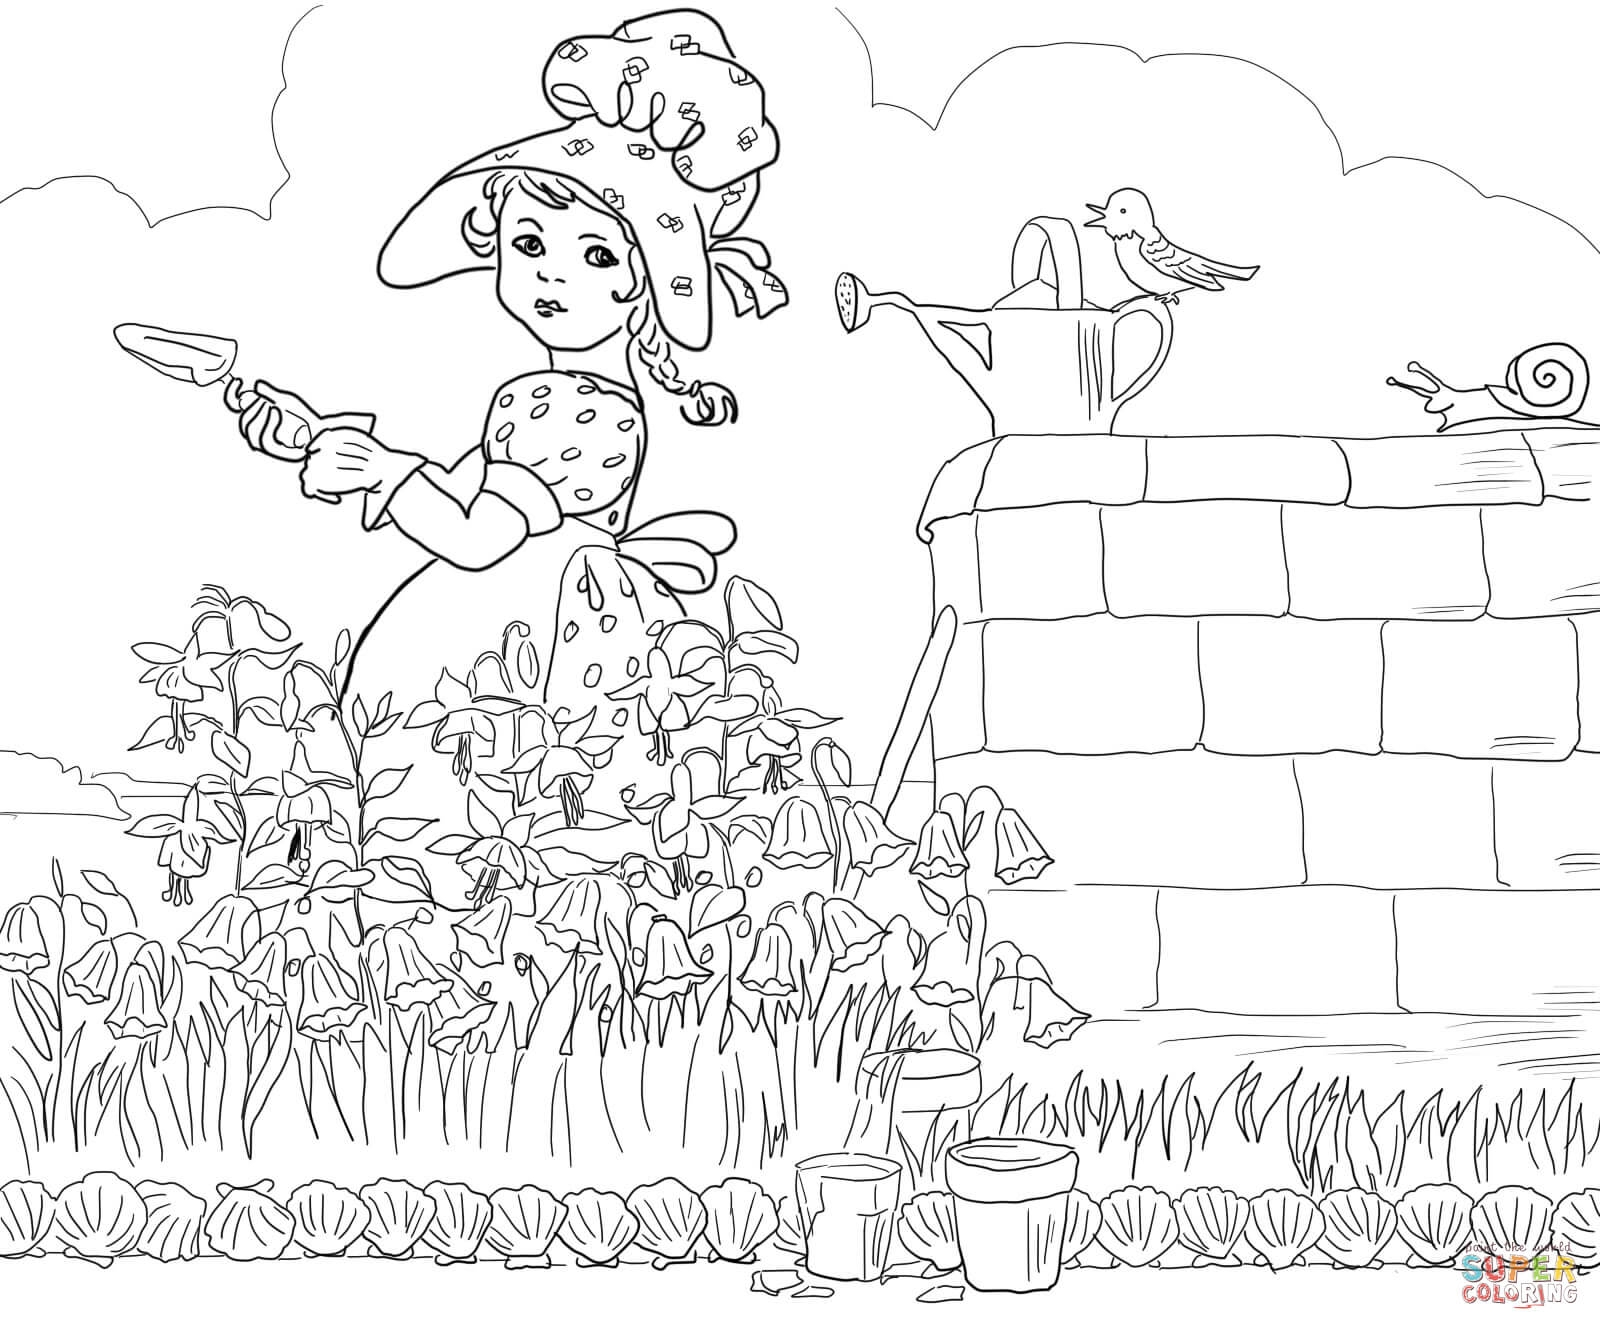 1600x1330 Mother Goose Nursery Rhymes Coloring Pages Printable Coloring